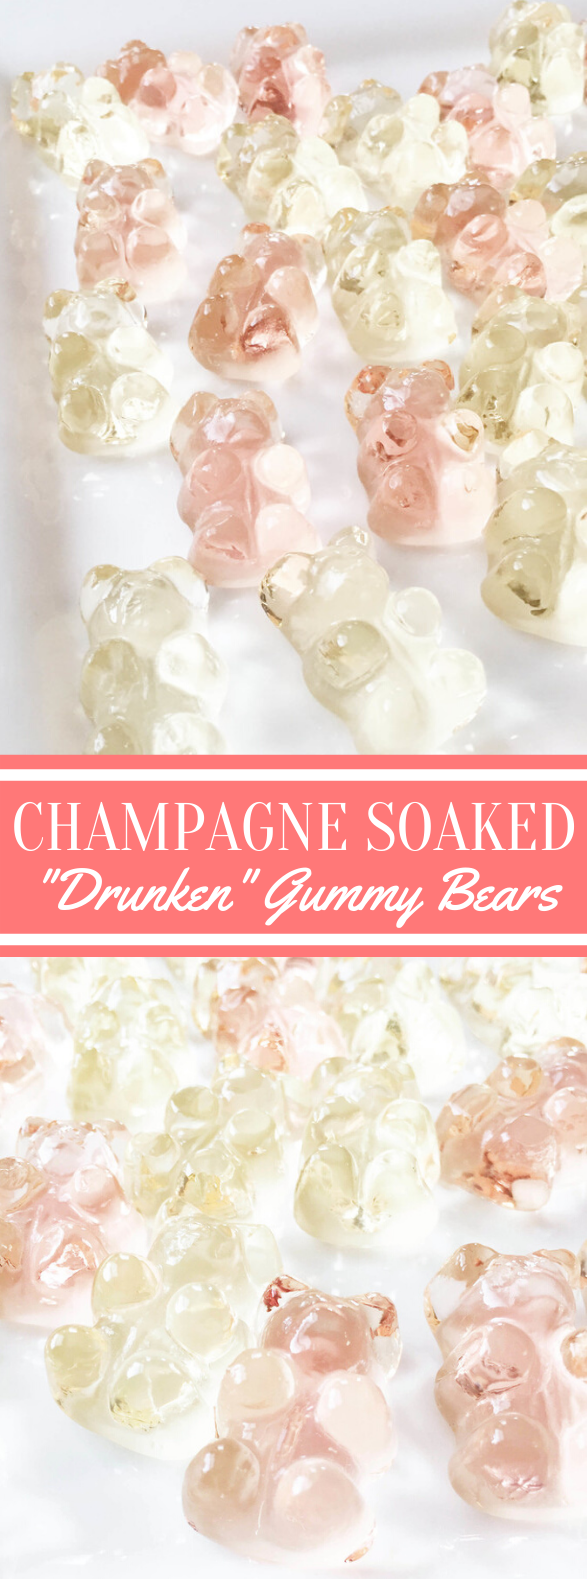 Champagne Soaked 'Drunken' Gummy Bears #desserts #drinks